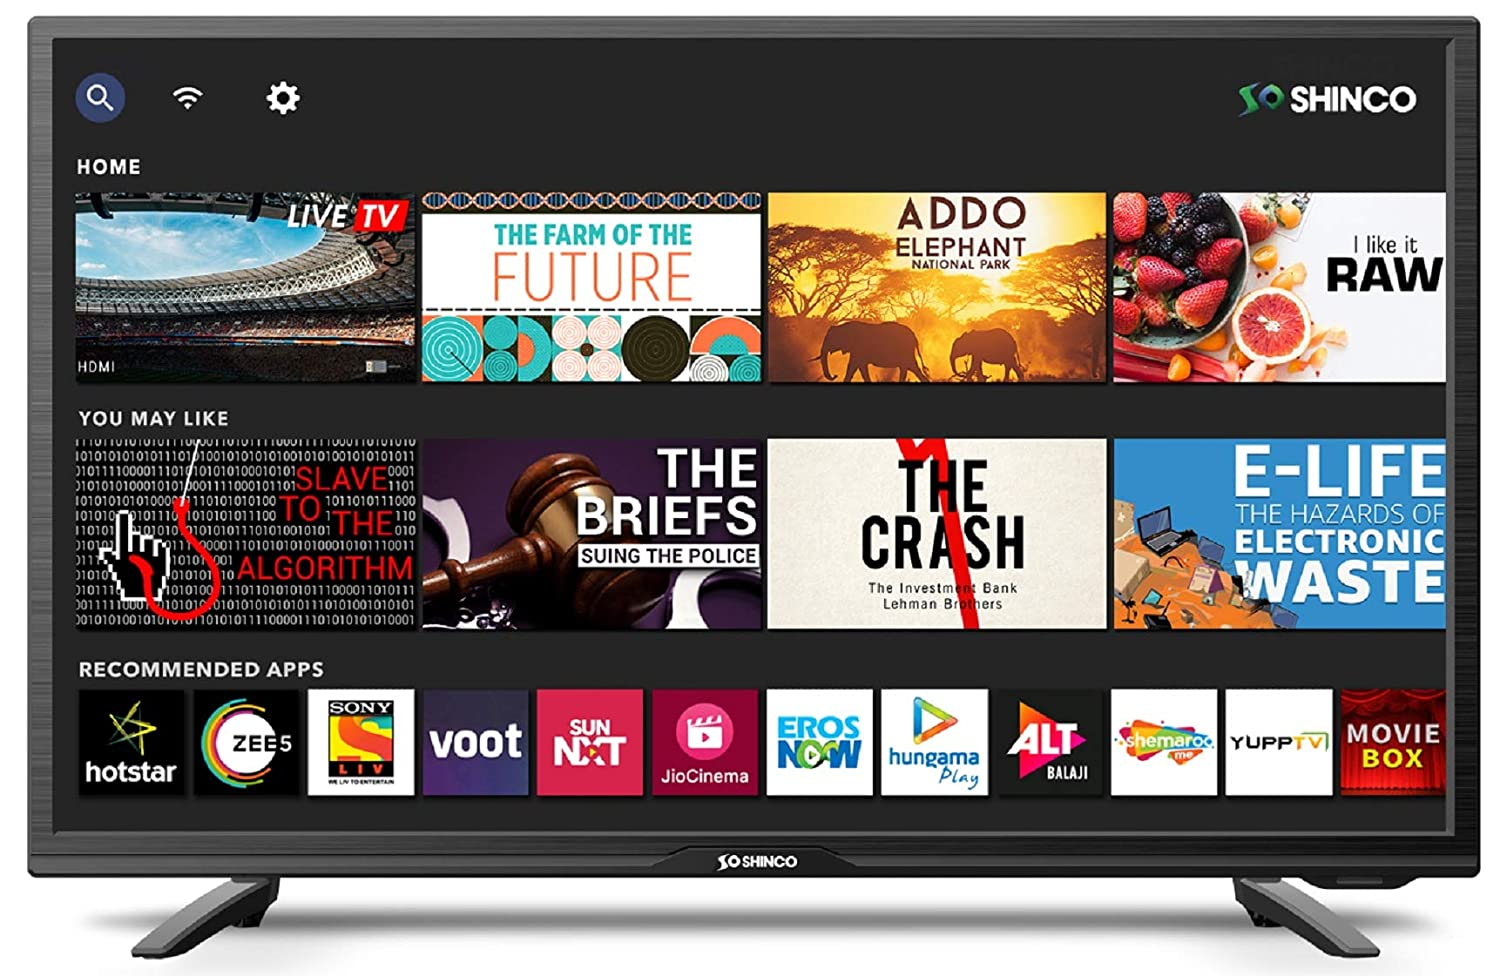 Shinco 80 cm (32 Inches) HD Ready Smart LED TV with Uniwall (Black) (2019 Model)